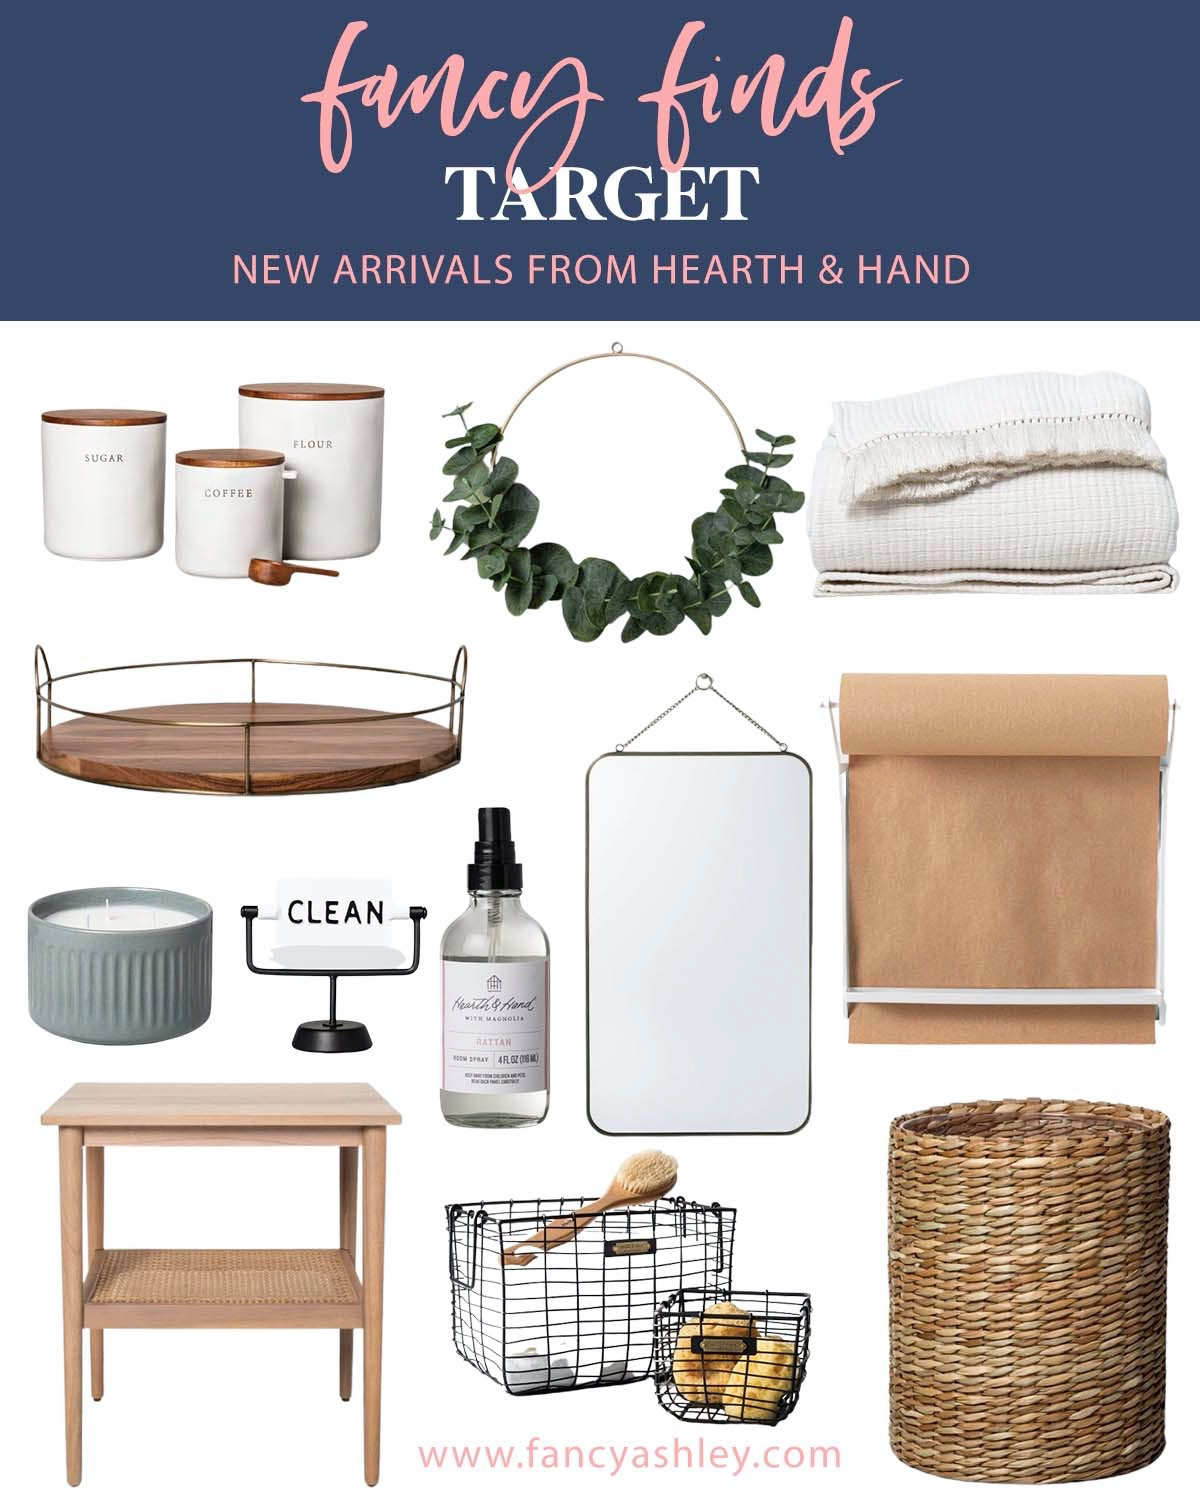 Target Finds by popular Houston life and style blog, Fancy Ashley: collage image of a cream blanket, wood and metal tray, clean sign, black wire baskets, woven basket, wooden side table, room spray, Eucalyptus wreath, metal butcher paper roll, mirror, candle, and flour jars.